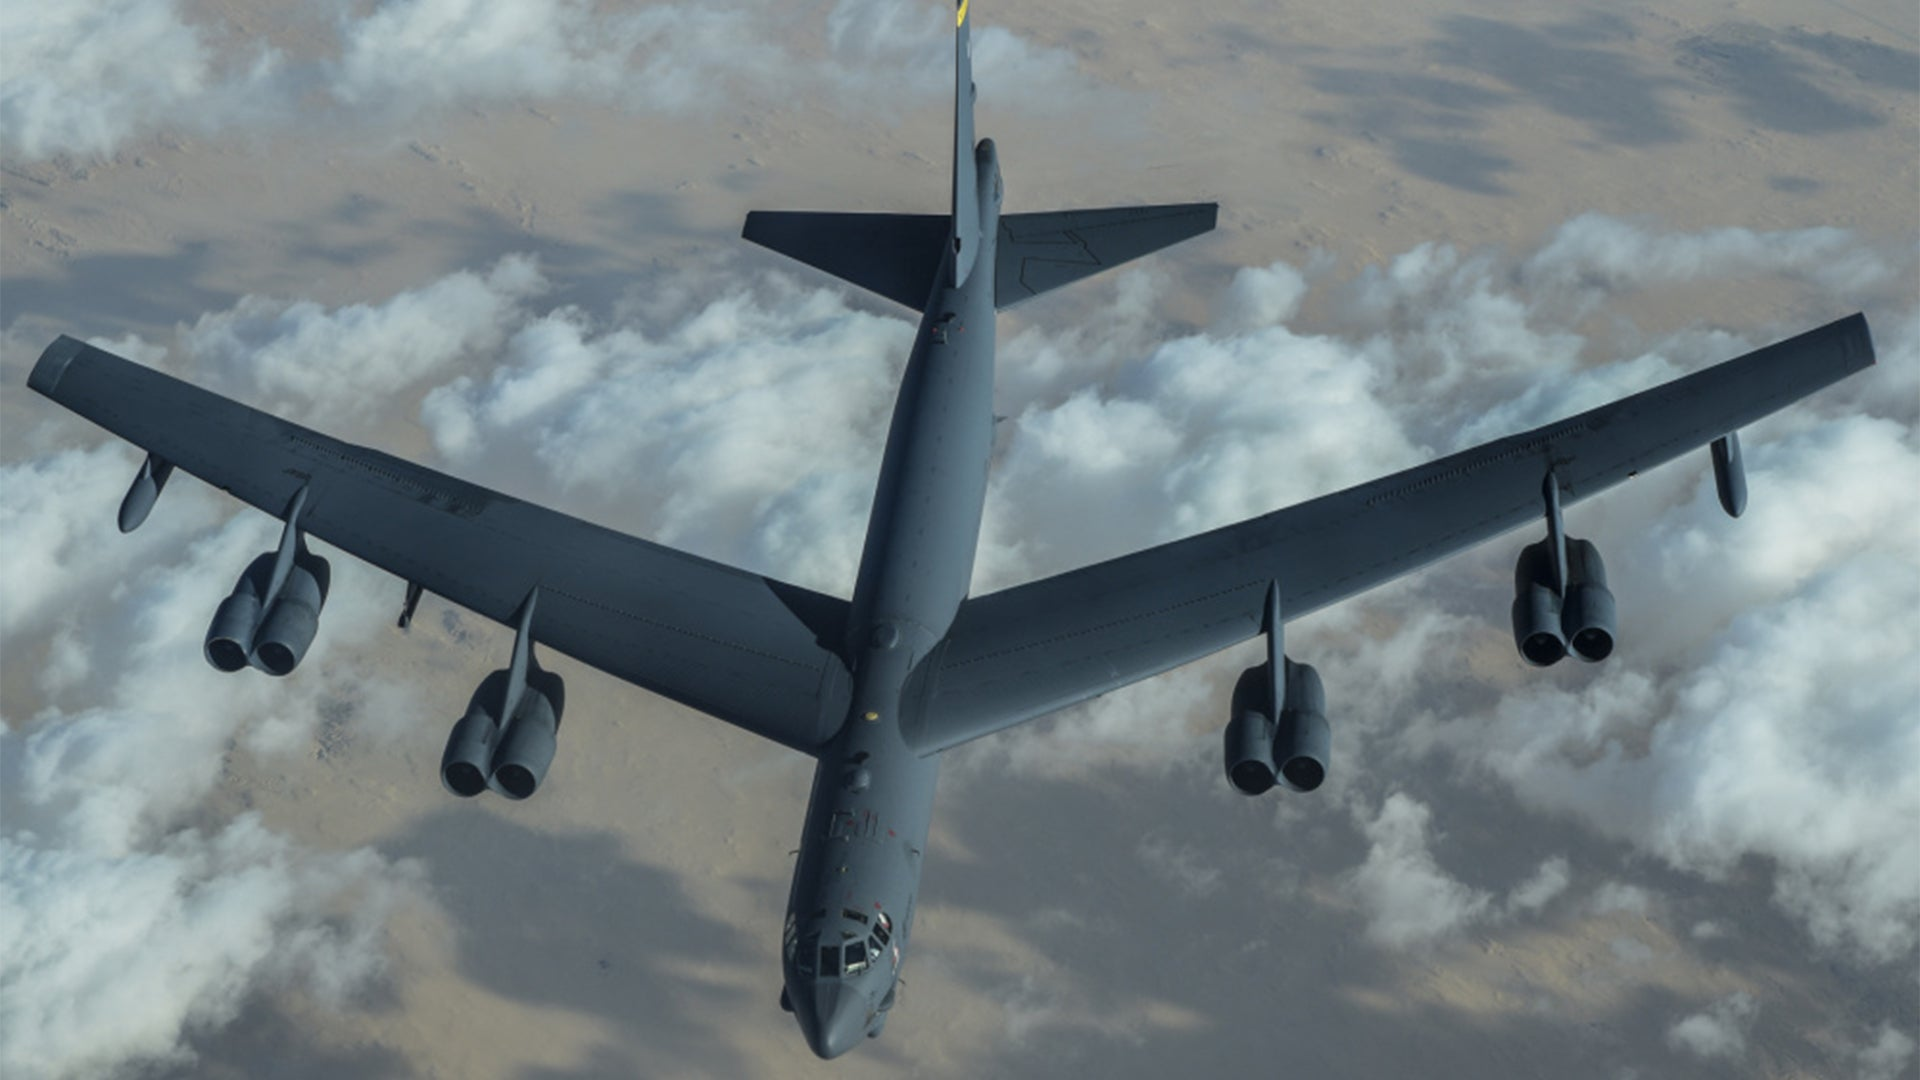 B-52s fly over Middle East in yet another display of force for Iran